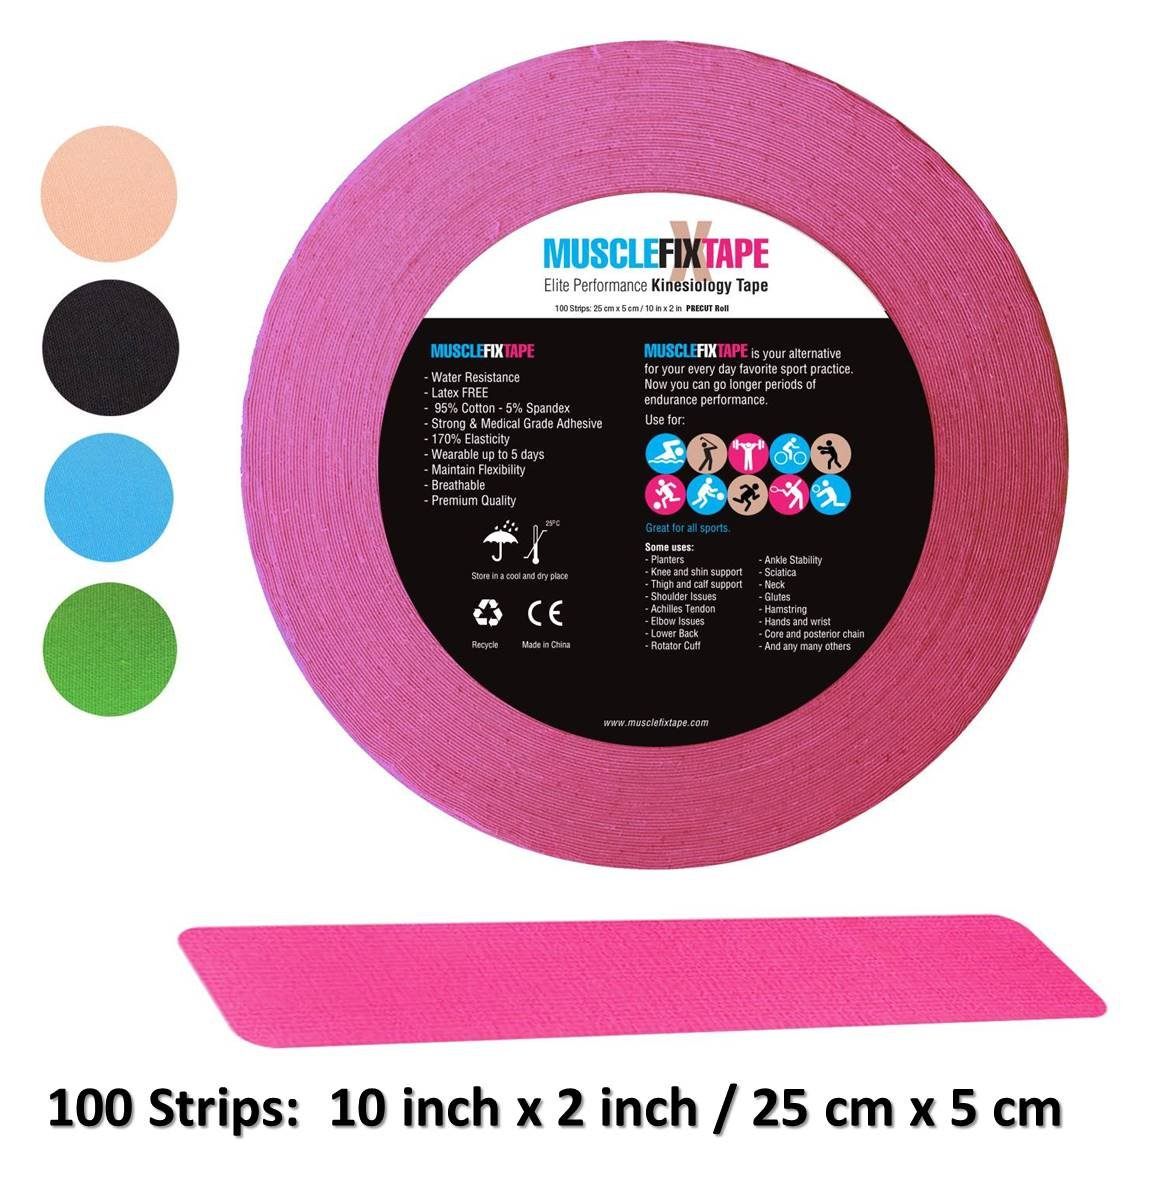 Pink Kinesiology Tape Precut Roll - Bulk Jumbo Clinical Size Recovery Sports Athletic Injury Therapeutic Support PRO Physio Therapy (100 Strips: 10 in x 2 in / 25 cm x 5 cm) kt-Tape kttape ktape